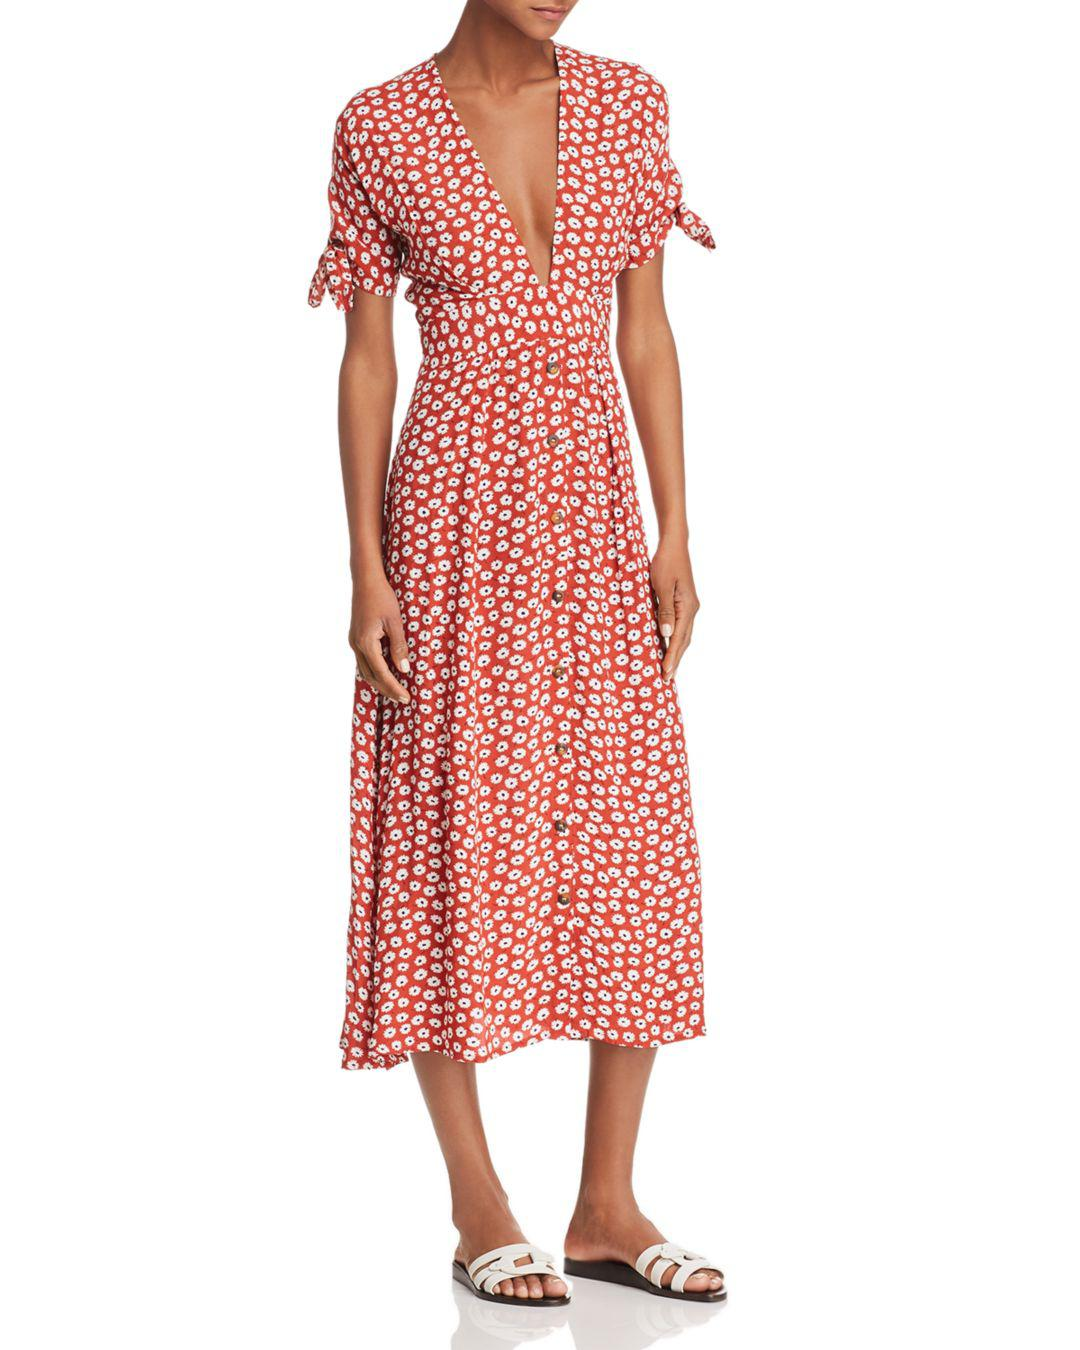 f4e16cd456d82d Lyst - Faithfull The Brand Nina Floral Midi Dress in Red